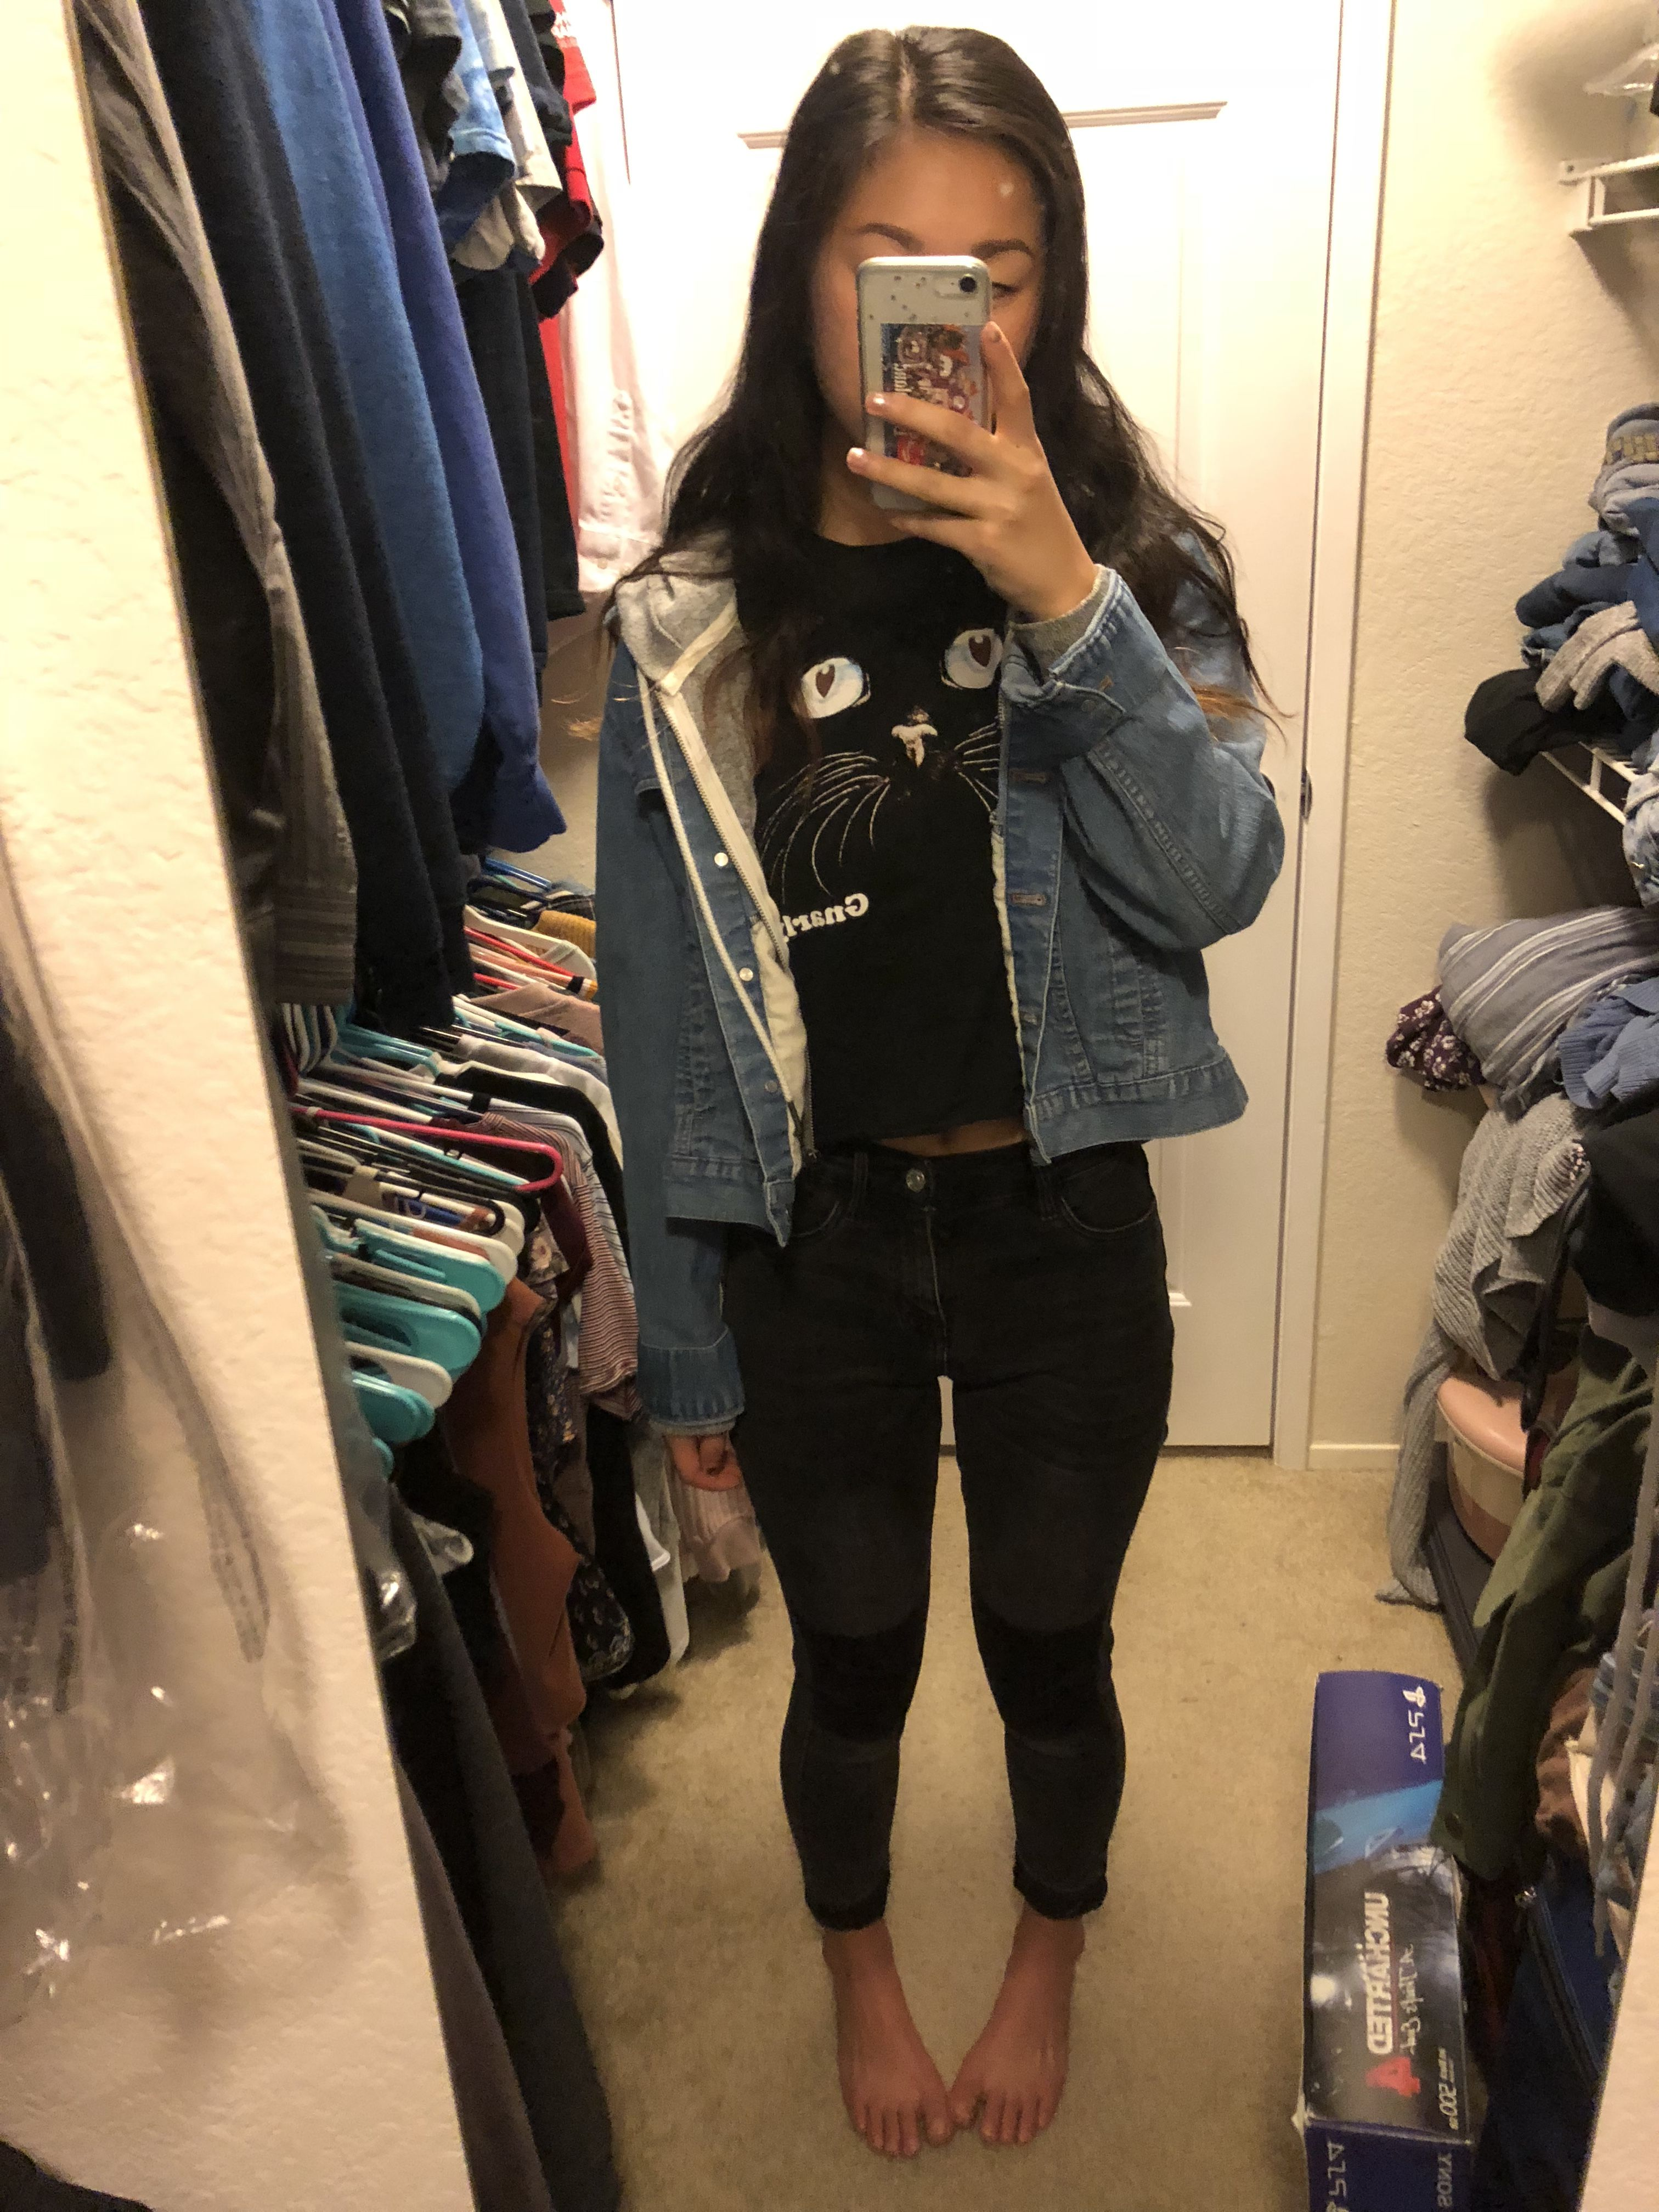 Jean Jacket Cropped Graphic Tee Black Jeans Fashion Clothes Women Cute Winter Outfits Fashion [ 4032 x 3024 Pixel ]